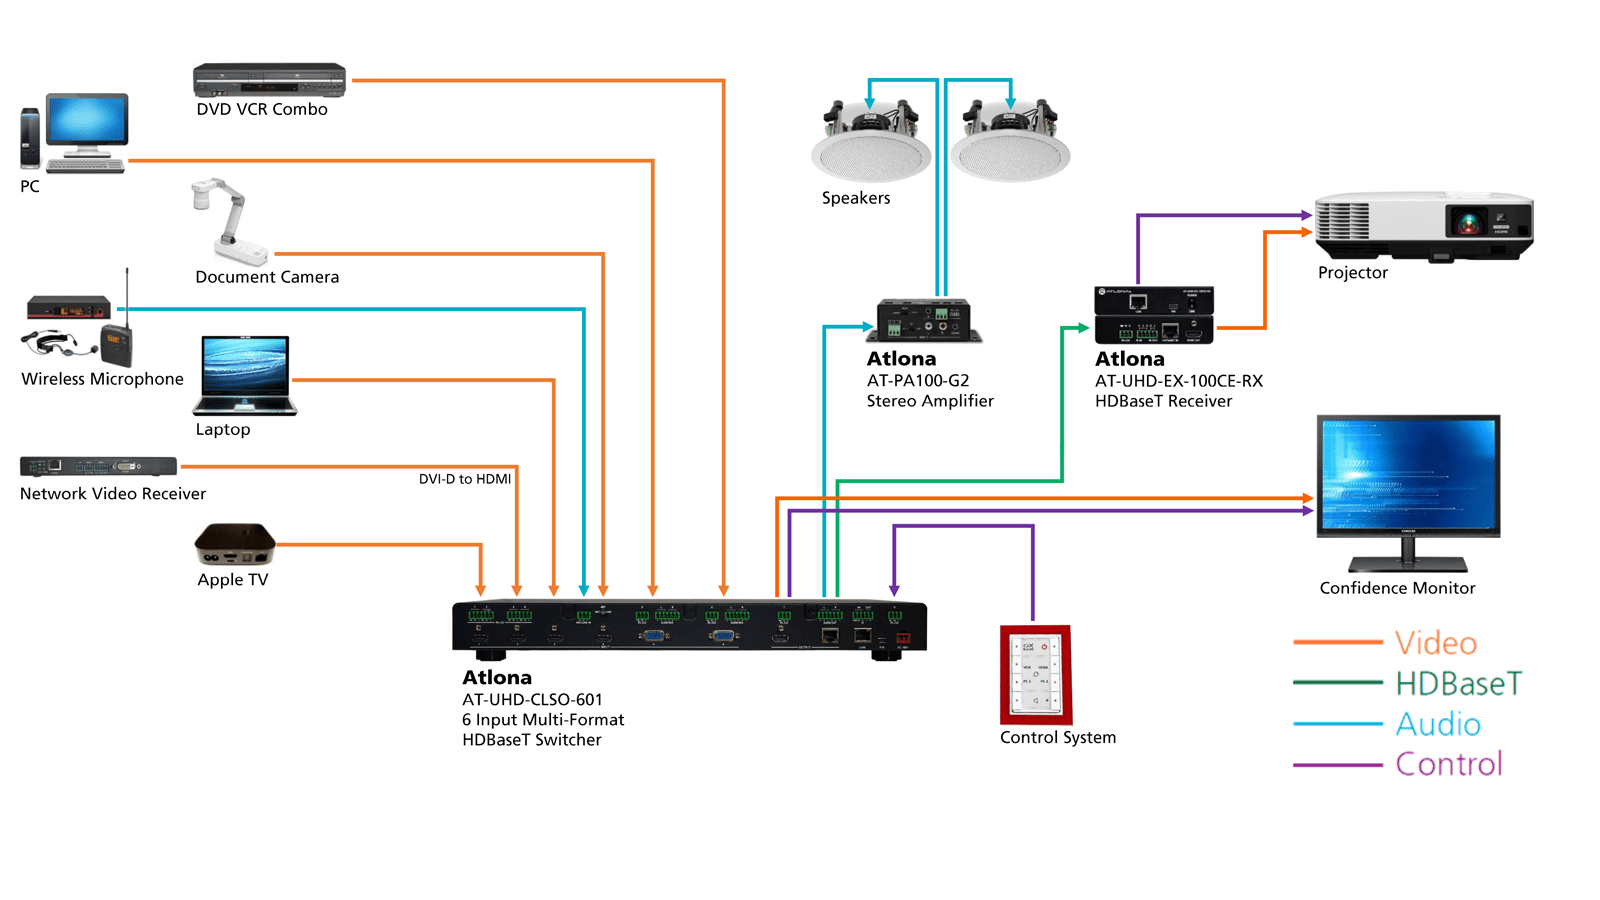 control4 wiring diagrams msd 6010 harness 4k/uhd multi-format switcher with mirrored hdmi and hdbaset outputs